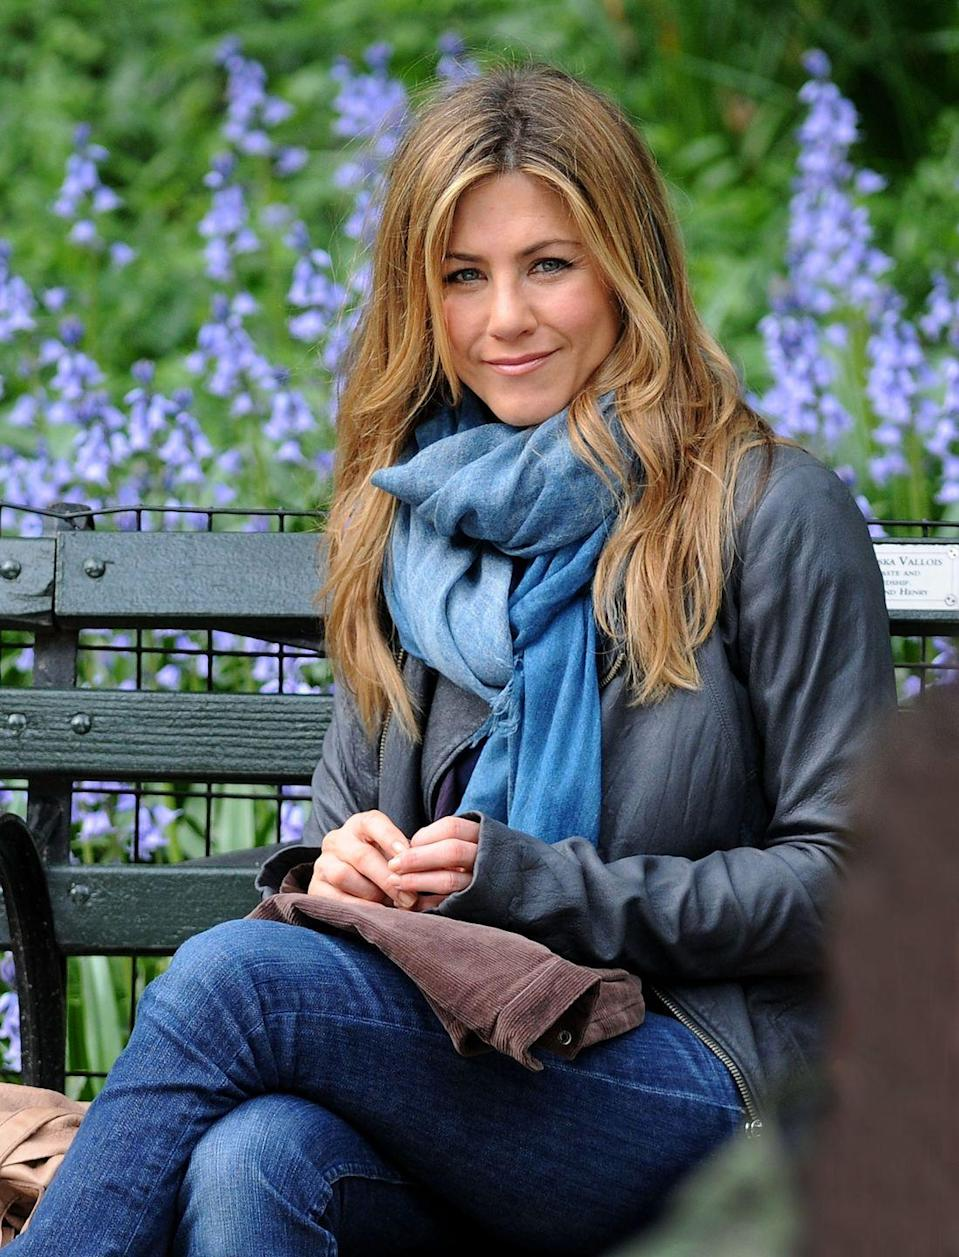 """<p>Jen wore this warm-looking outfit on set for the film <em>The Switch</em>, starring her multiple-time costar Jason Bateman. The film was <a href=""""https://www.vulture.com/2010/02/jennifer_anistons_comedy_the_b.html"""" rel=""""nofollow noopener"""" target=""""_blank"""" data-ylk=""""slk:originally titled"""" class=""""link rapid-noclick-resp"""">originally titled </a><em><a href=""""https://www.vulture.com/2010/02/jennifer_anistons_comedy_the_b.html"""" rel=""""nofollow noopener"""" target=""""_blank"""" data-ylk=""""slk:The Baster"""" class=""""link rapid-noclick-resp"""">The Baster</a></em> because it's about artificial insemination. Thankfully, Disney decided to change the name.<br></p>"""